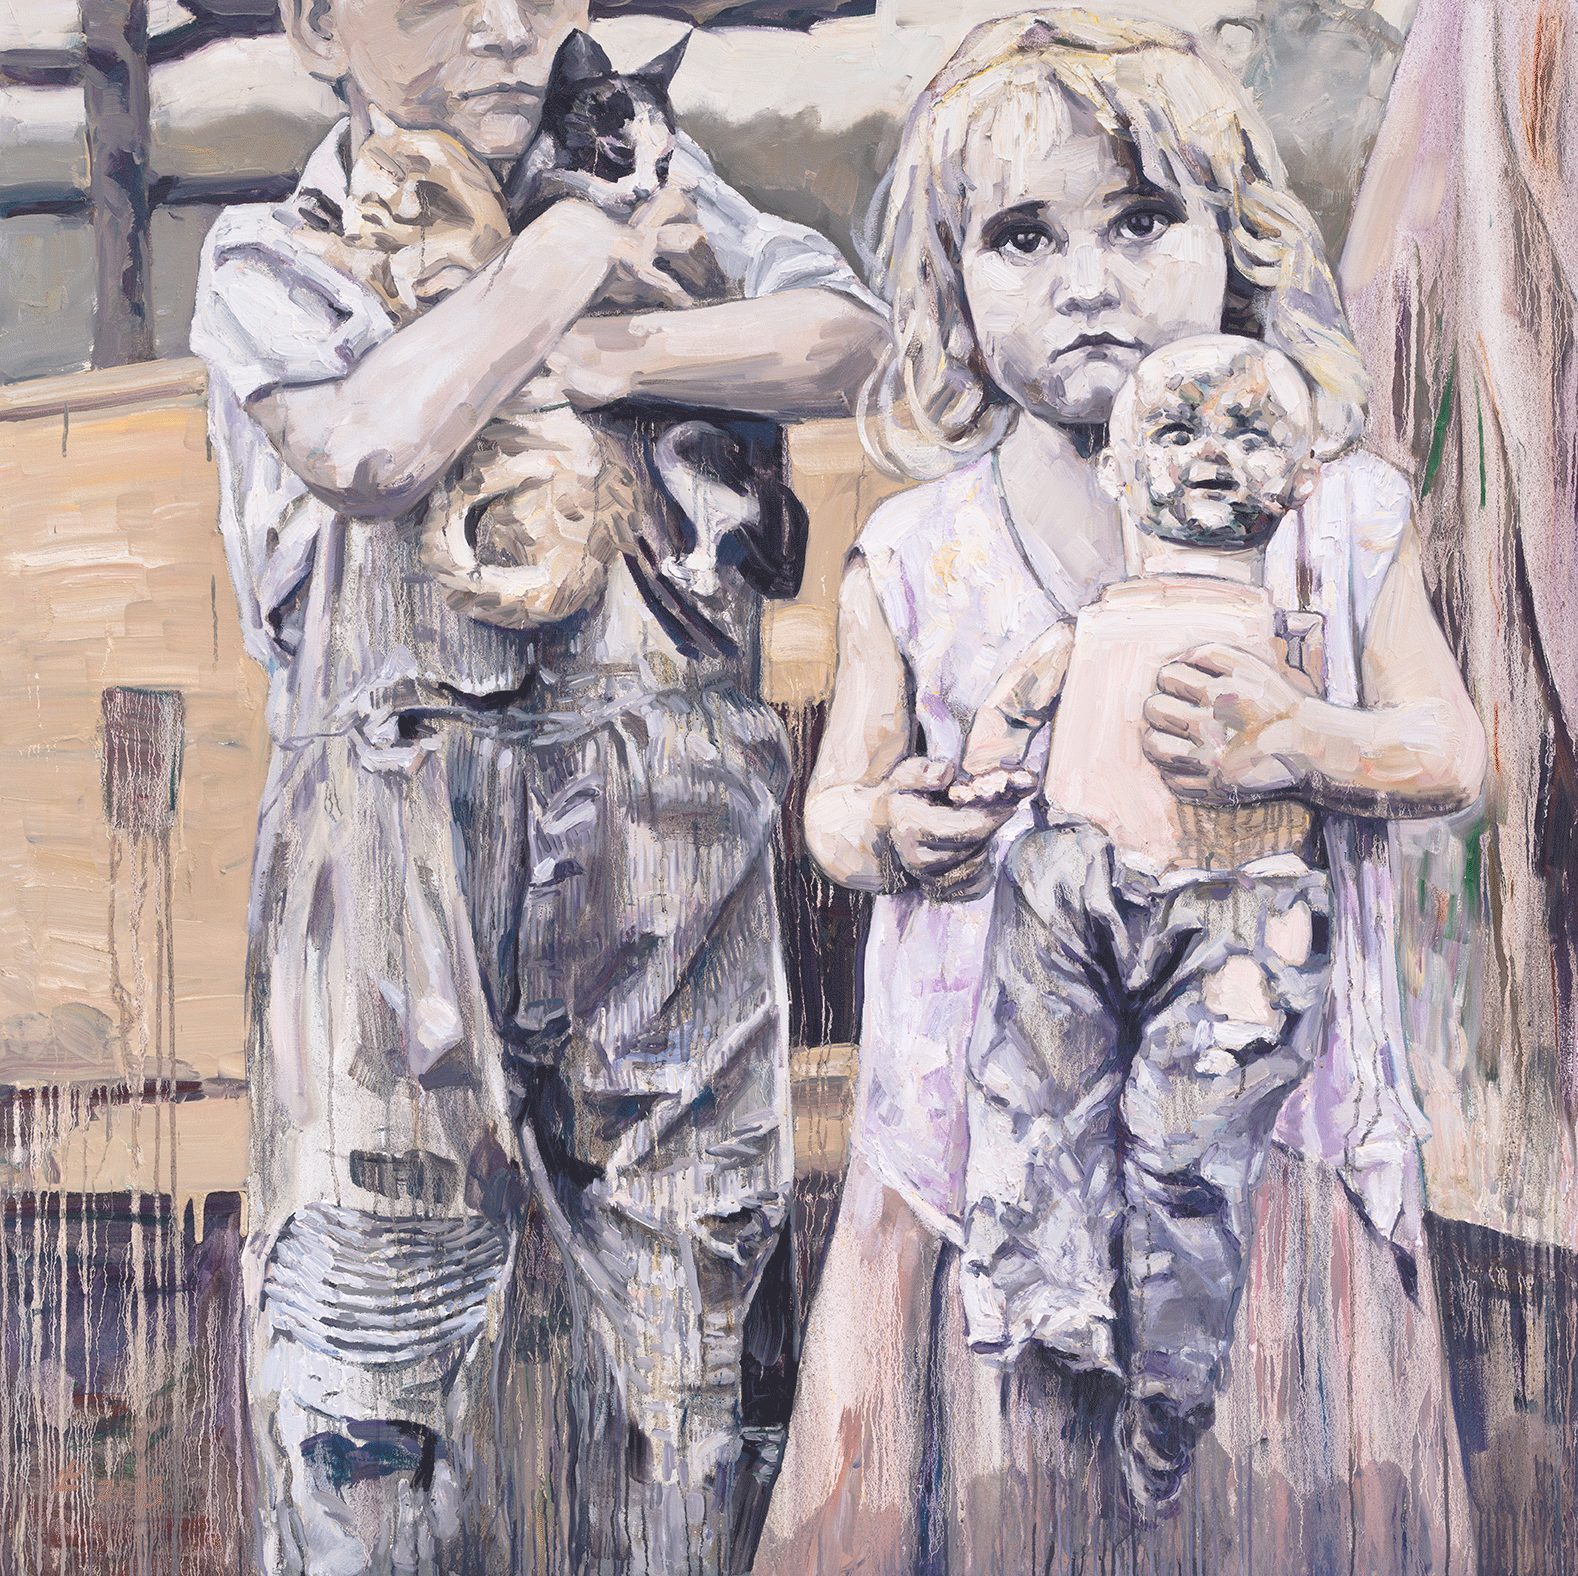 Camp Companions, 2015, Oil on canvas, 66x66 Inches